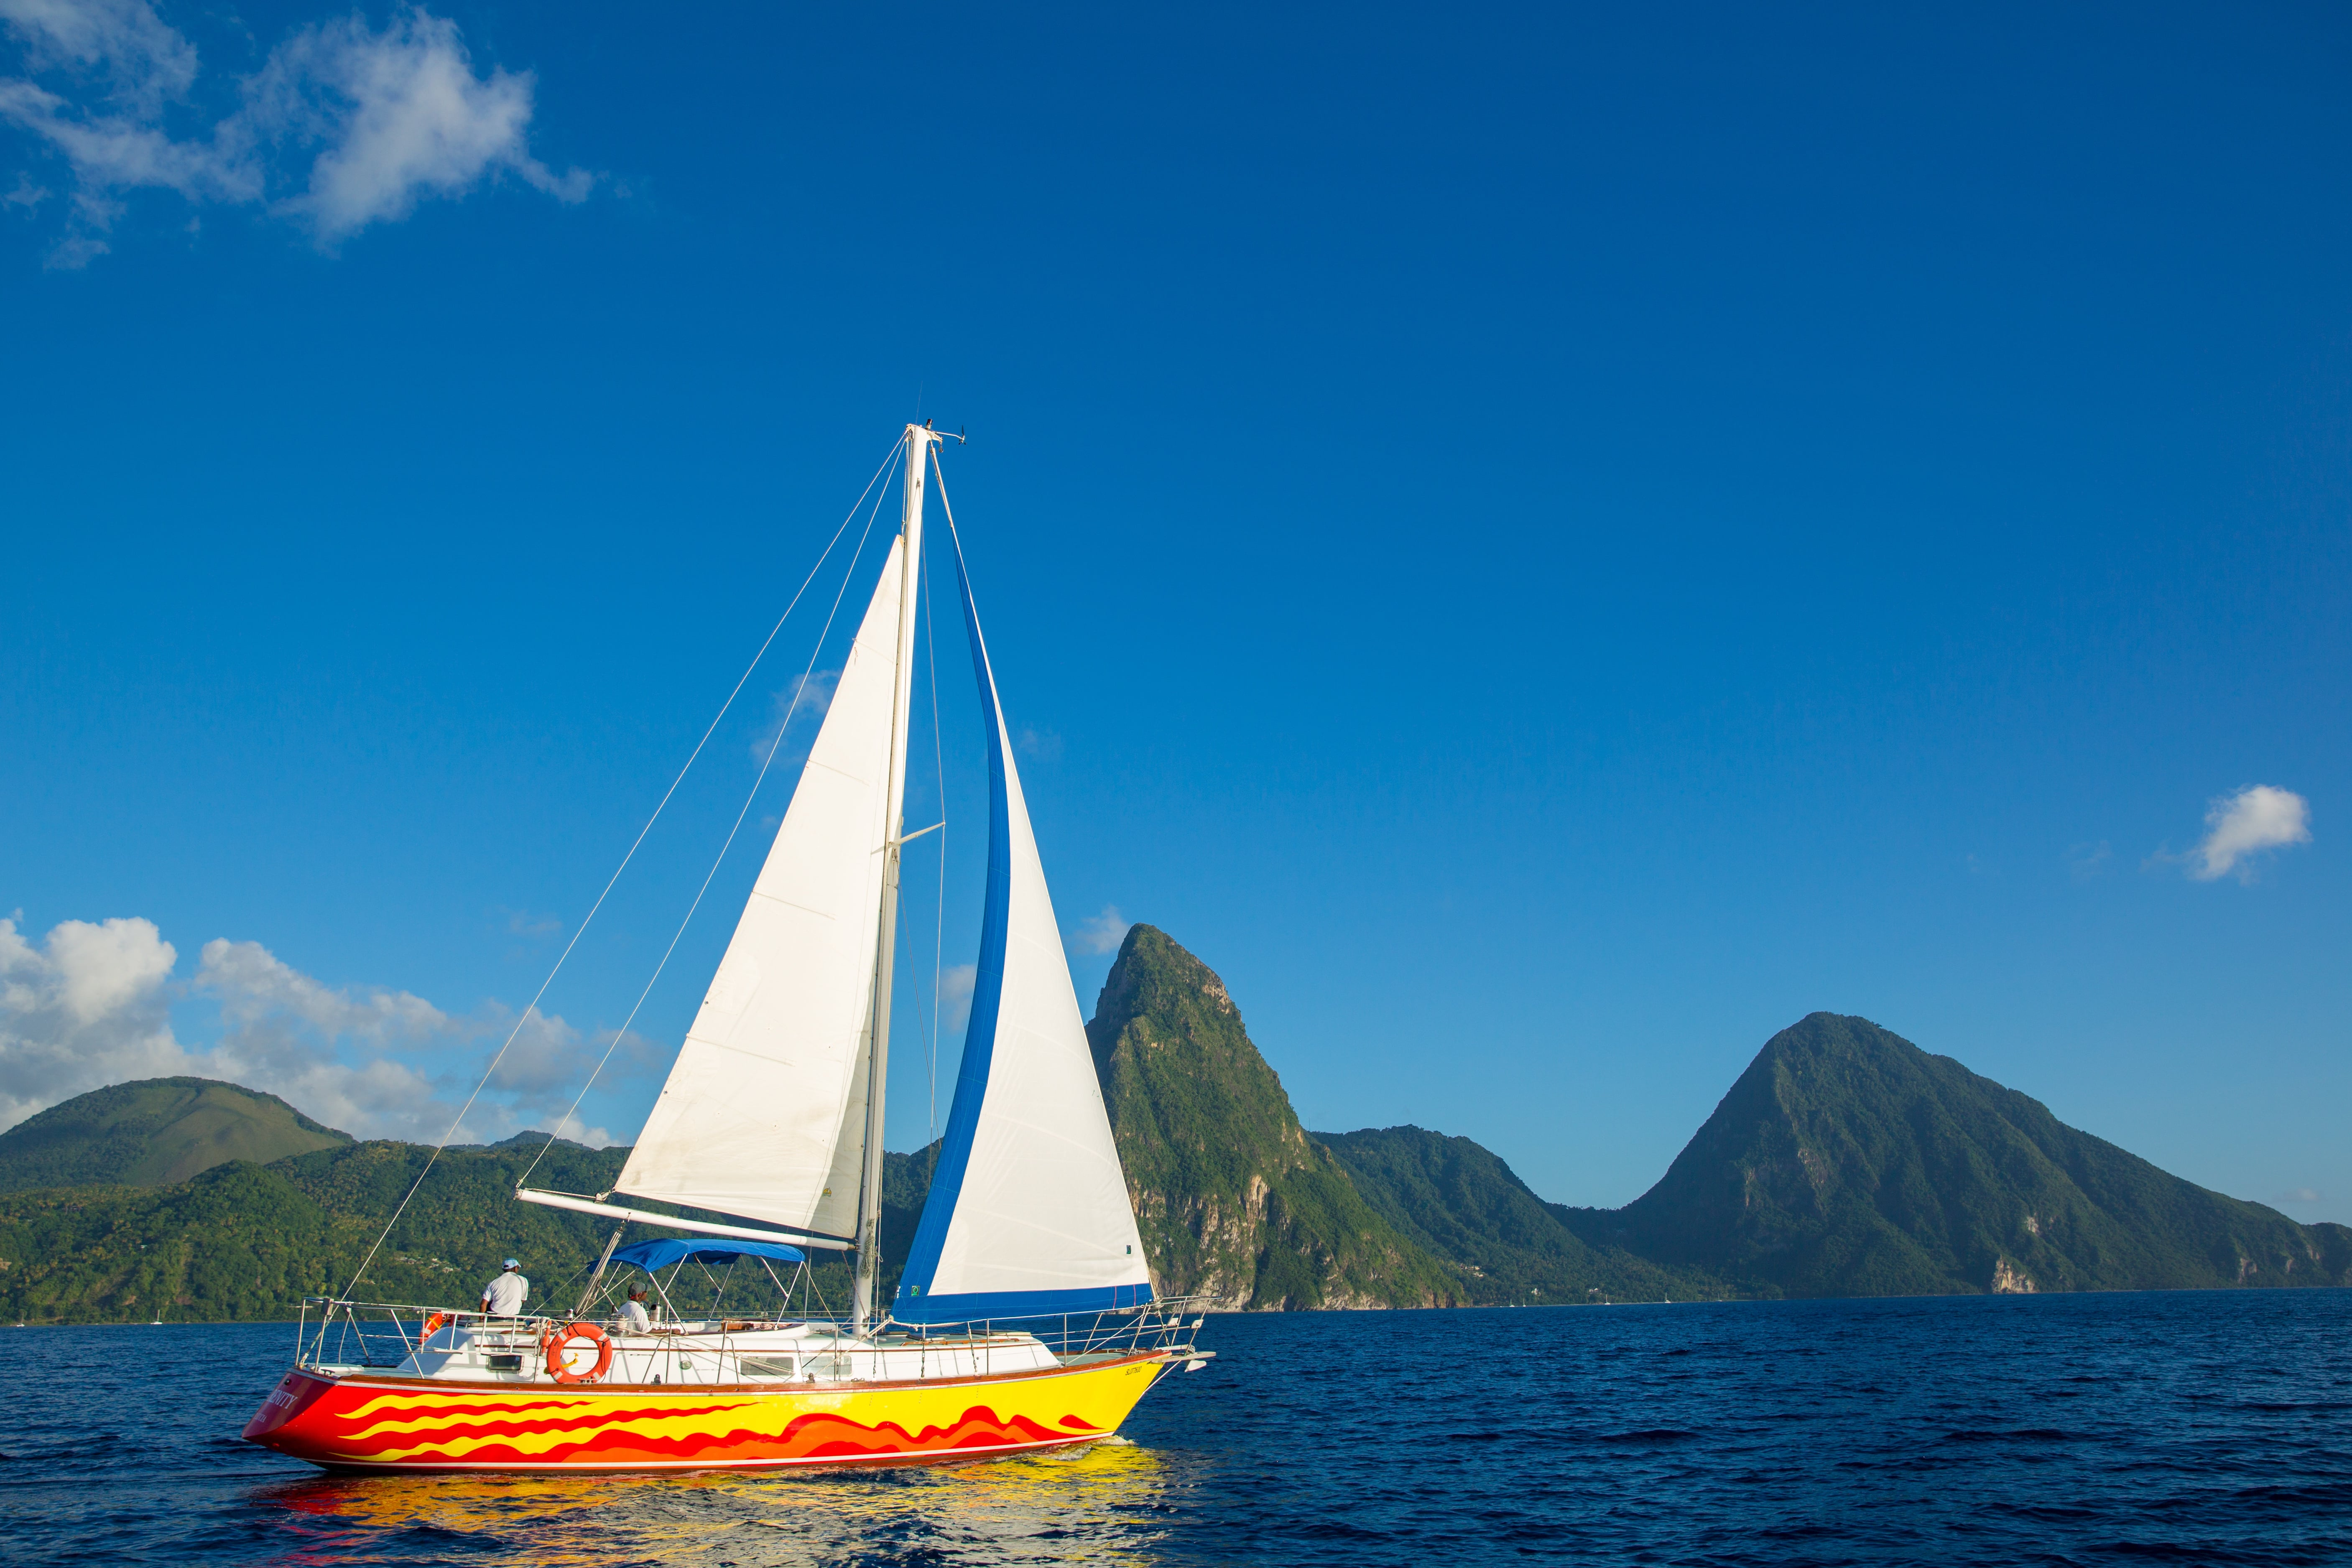 St. Lucia's west coast is sheltered from prevailing trade winds, providing calm, clear waters ideal for relaxing sailing trips.